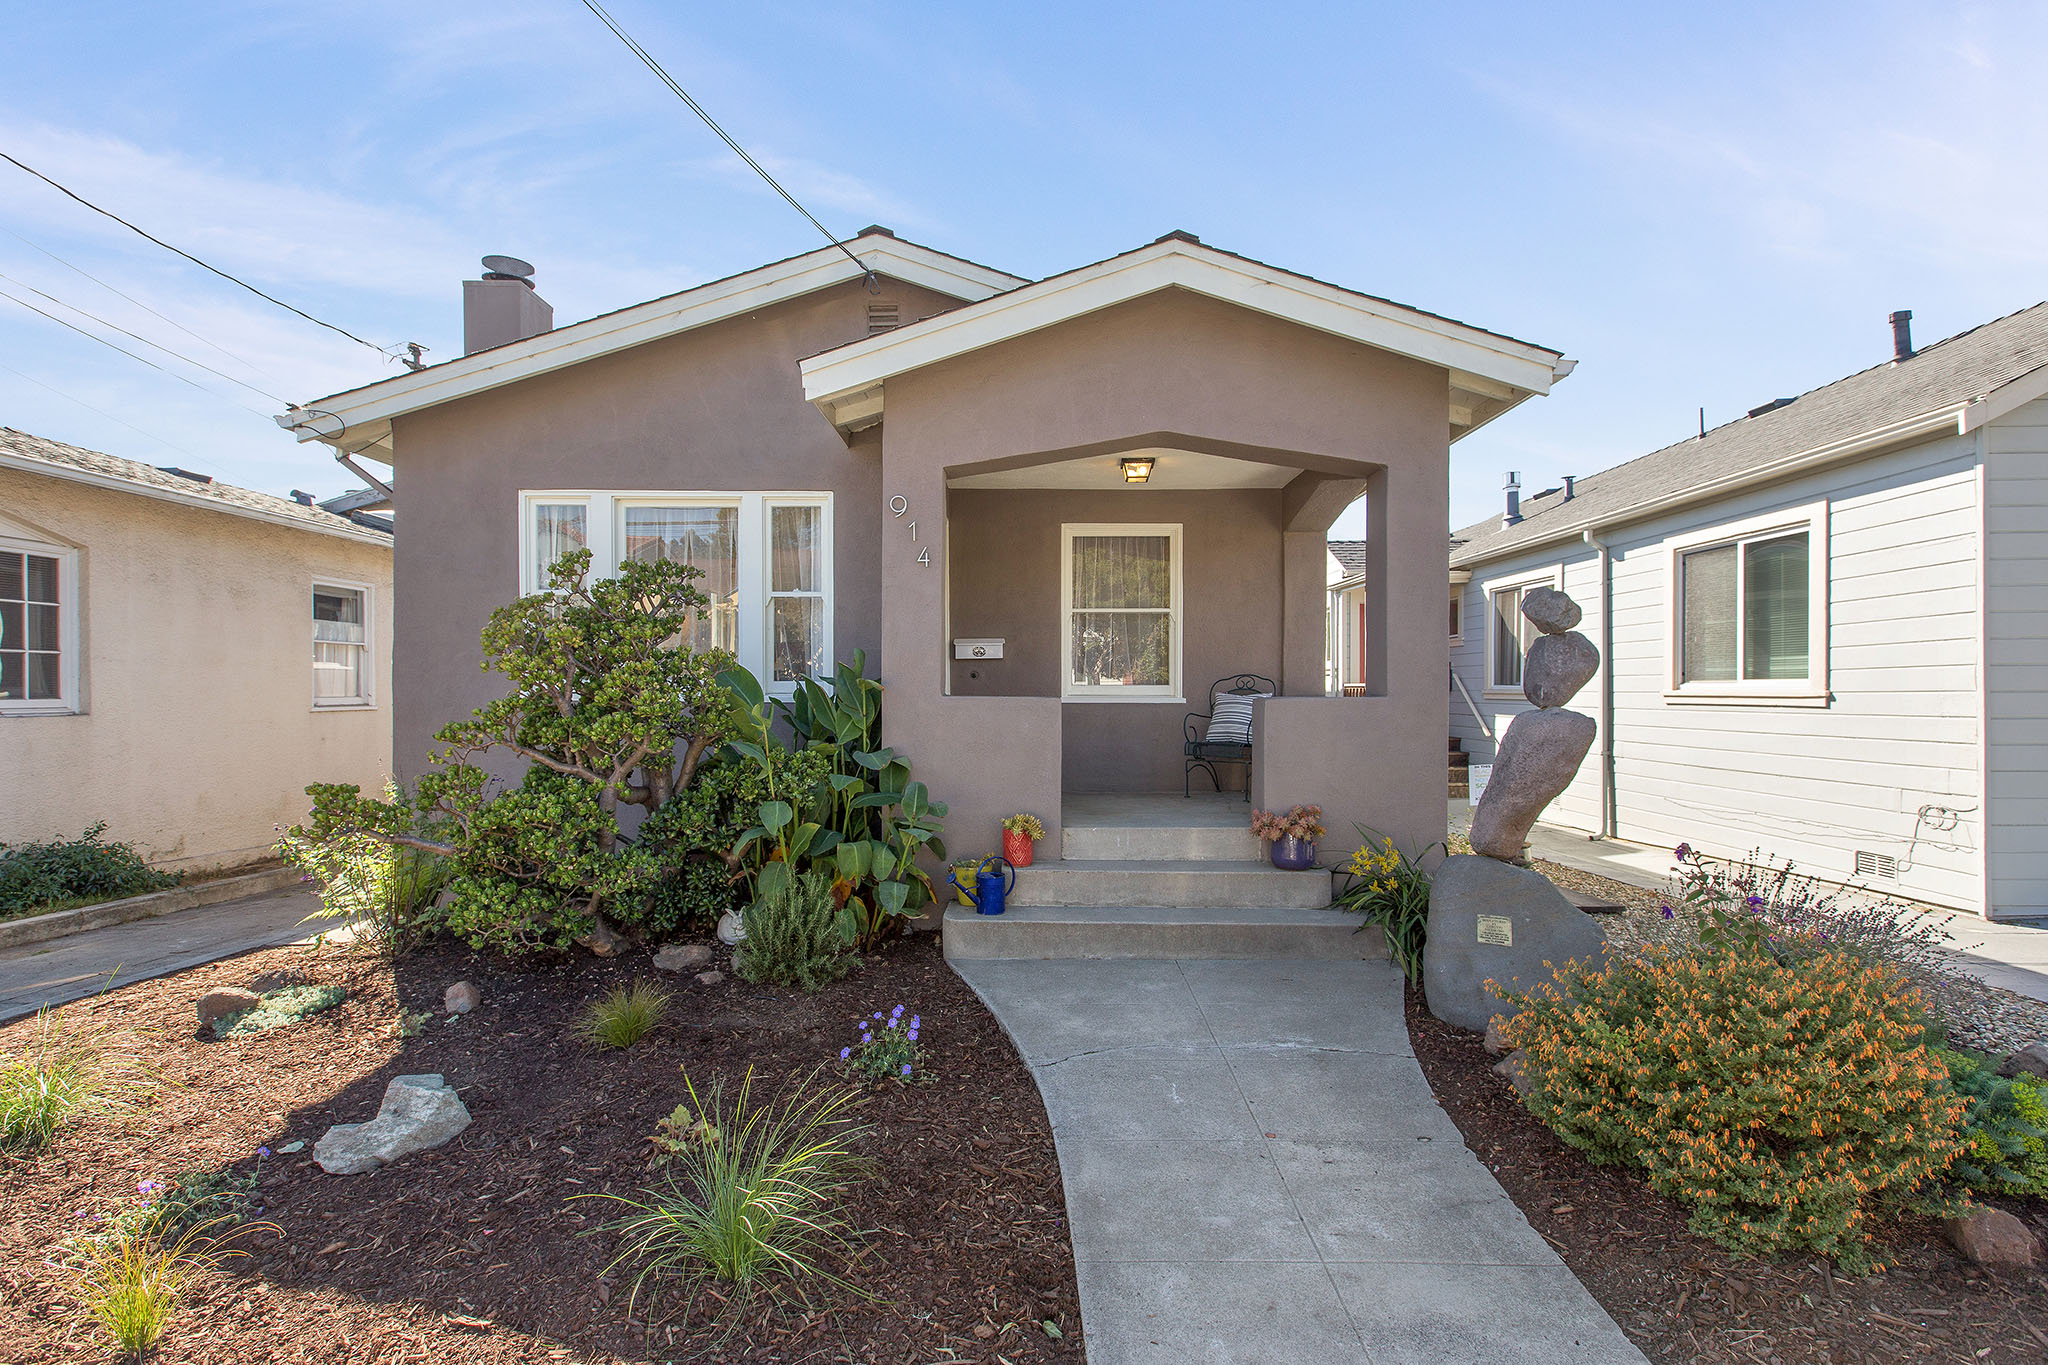 914 Evelyn Ave, Albany, CA 94706